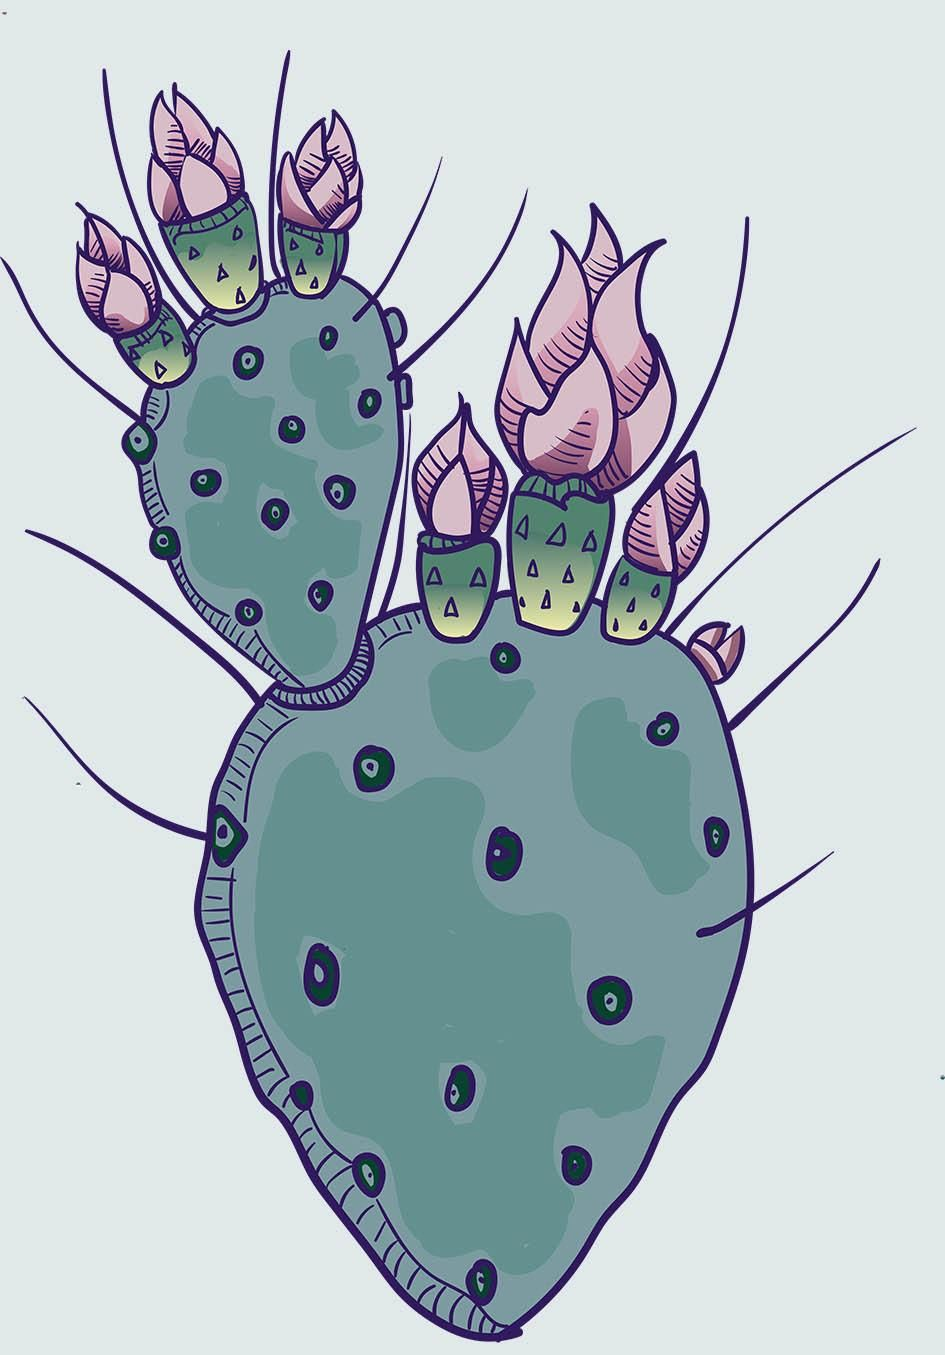 cactus - image 1 - student project